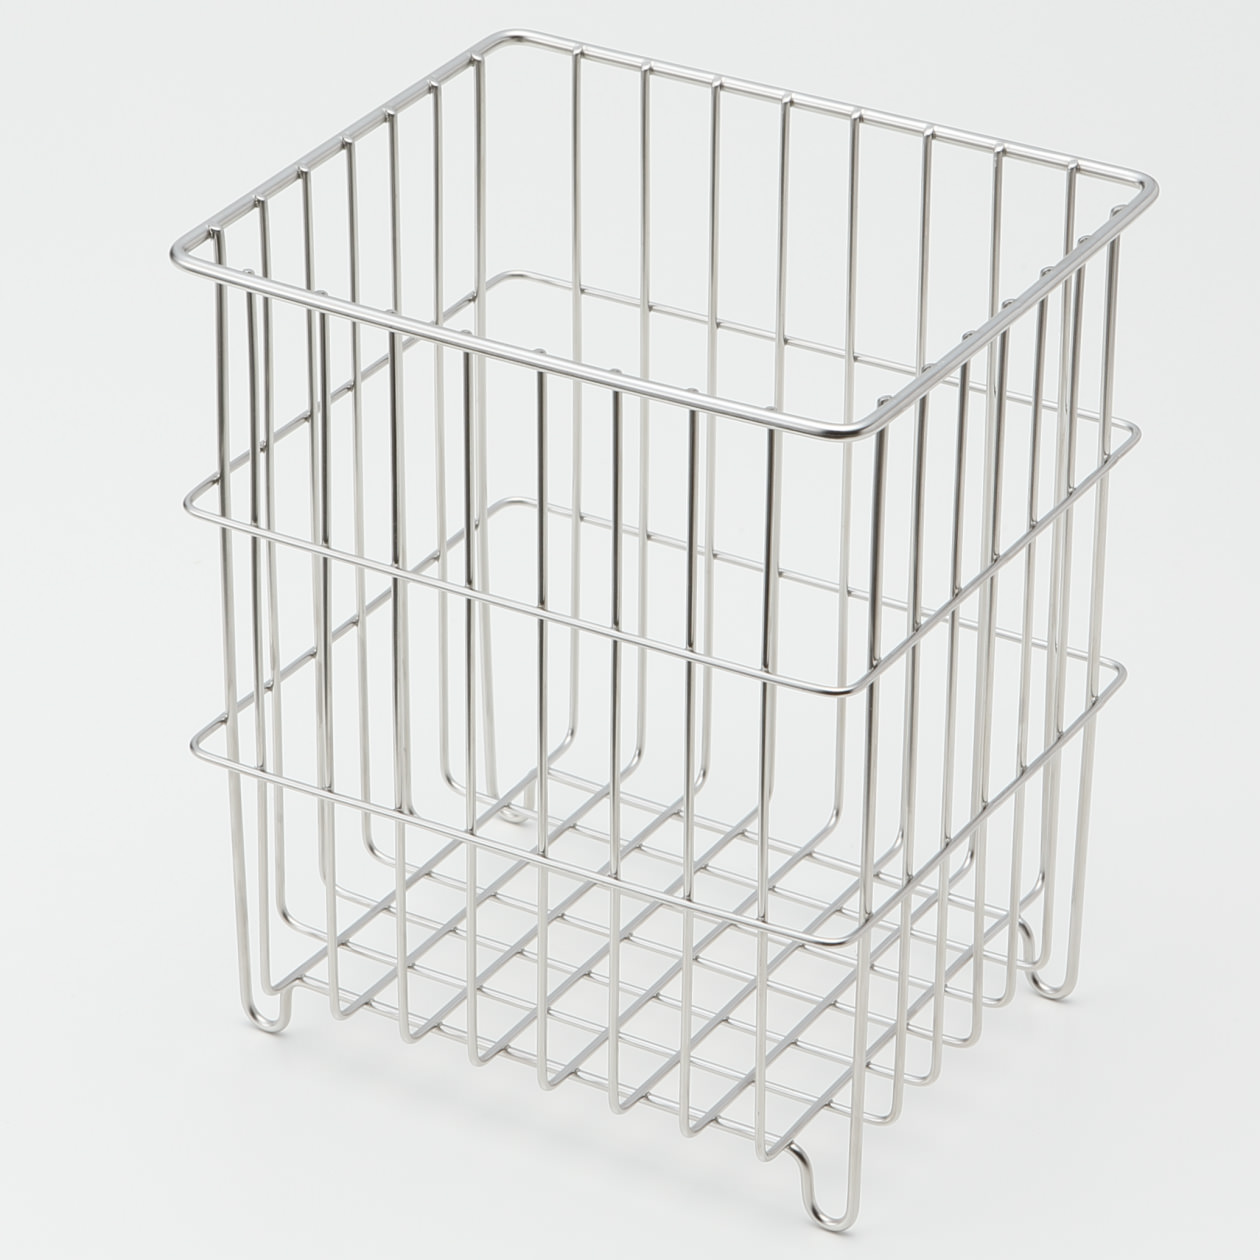 Stainless Steel Wire Racks | Stainless Steel Wire Rack 無印良品 Muji